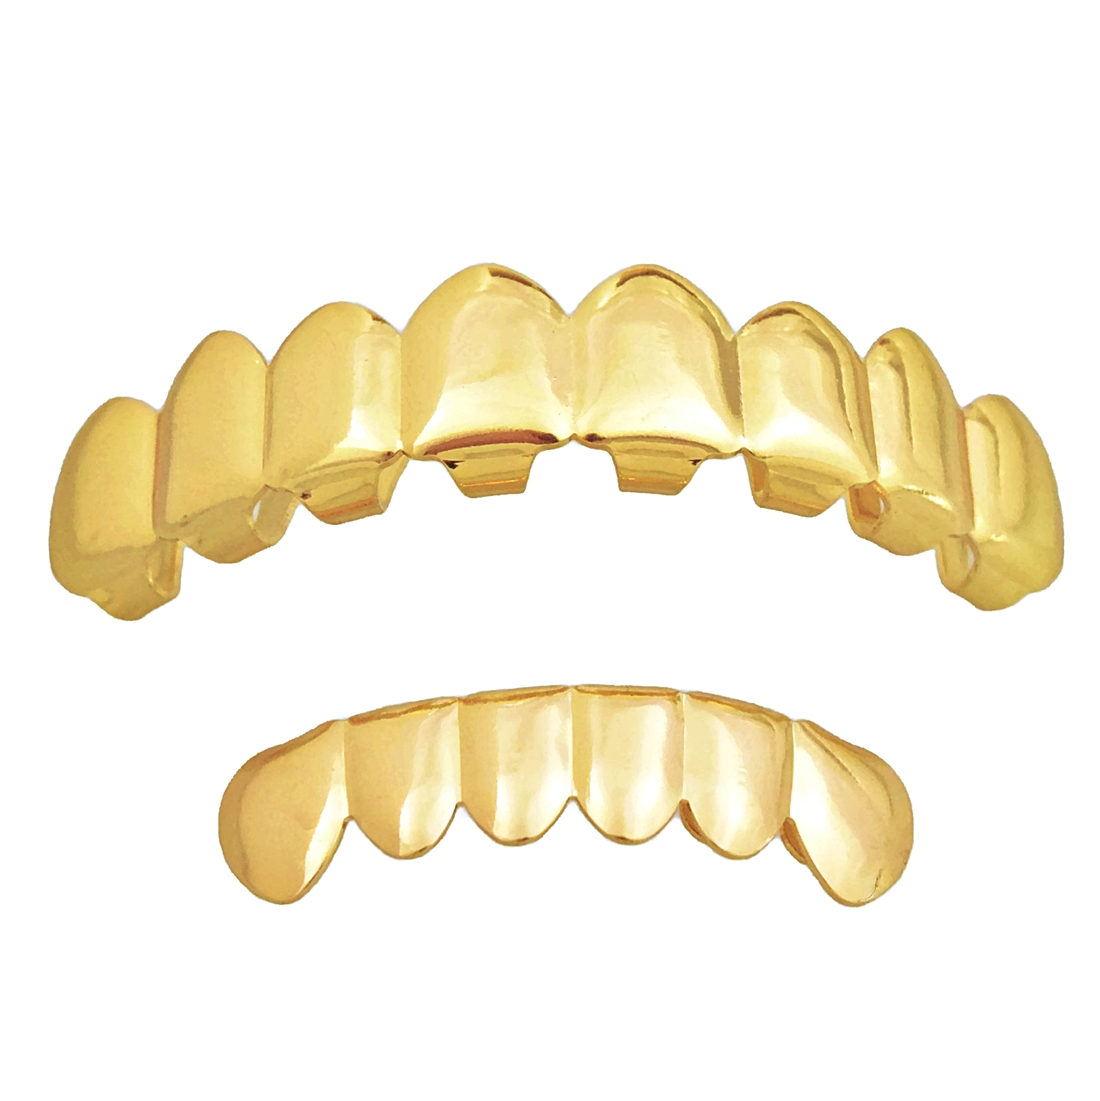 Plain Grillz Set 8 Top 6 Bottom Gold Teeth - Grillz - Full ...